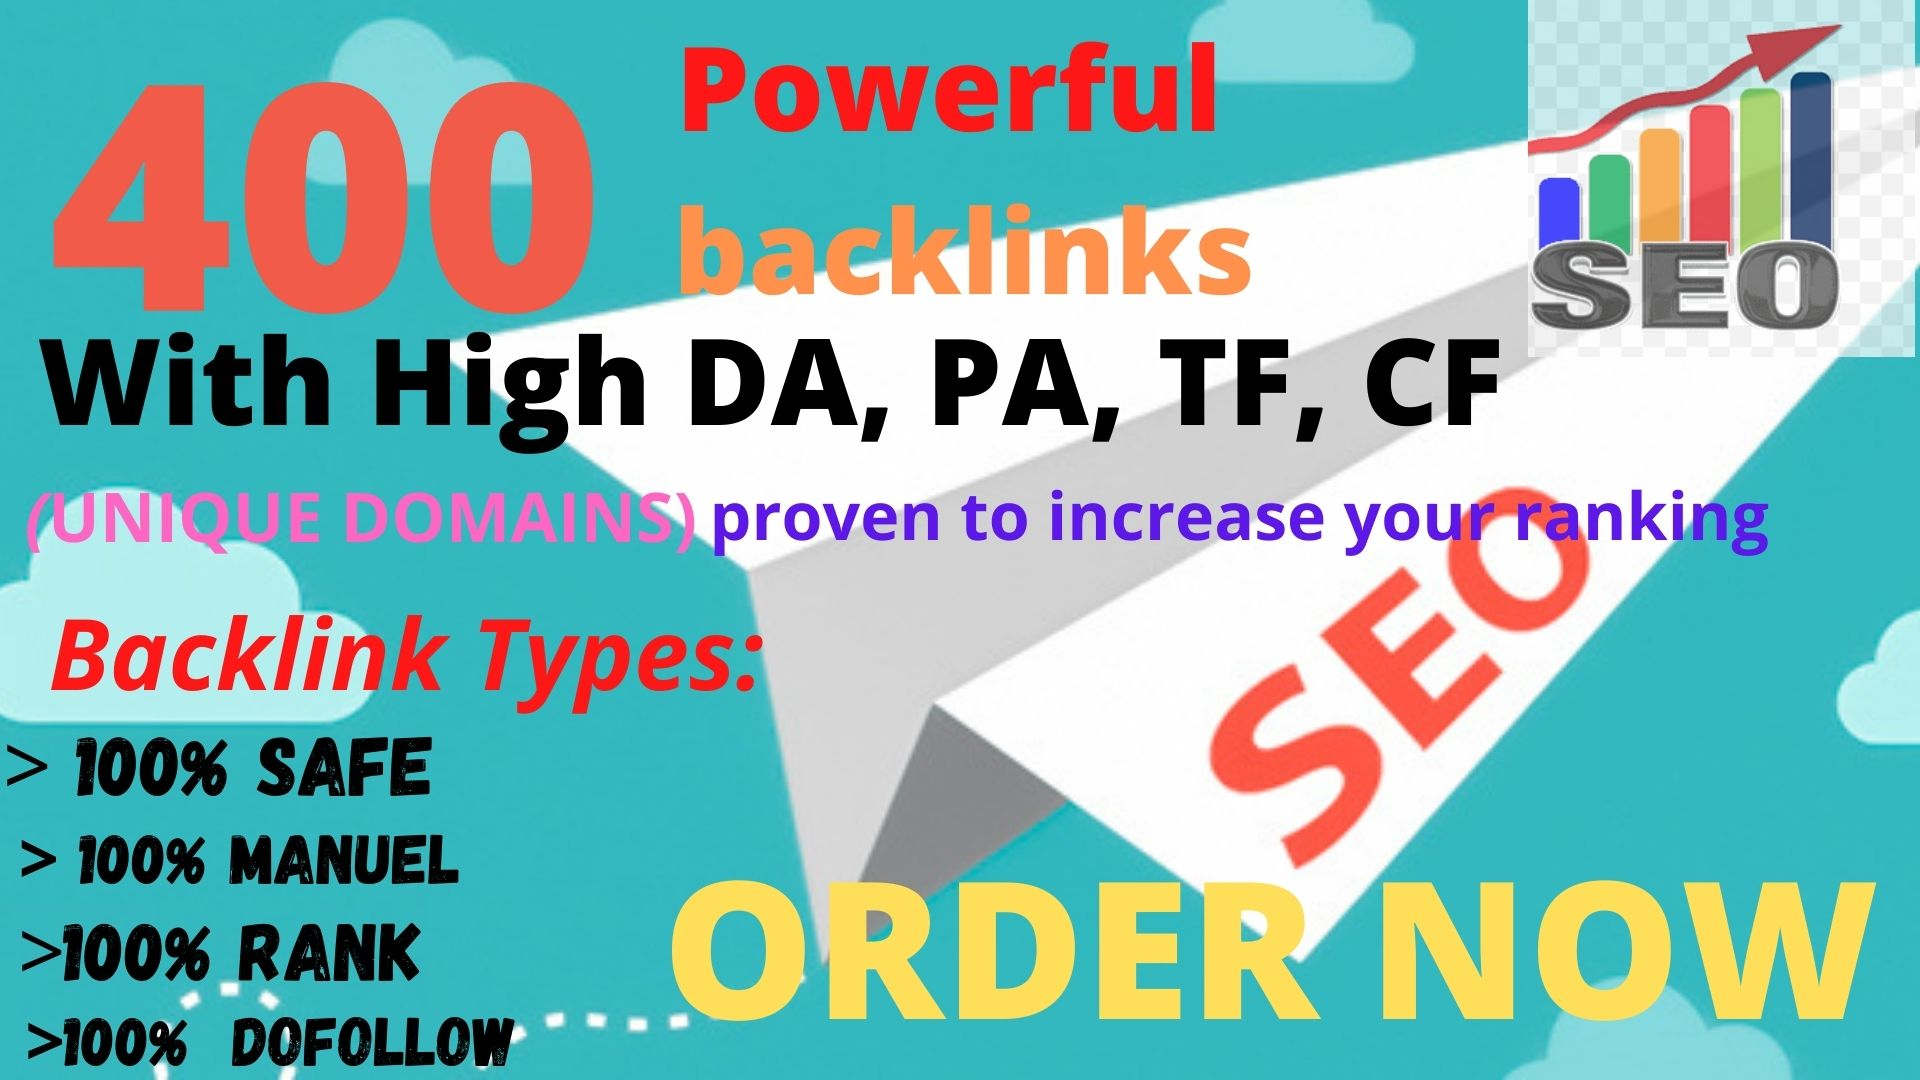 Get powerfull 400+ pbn backlink with high DA/PA/TF/CF on your homepage with unique website Perfect